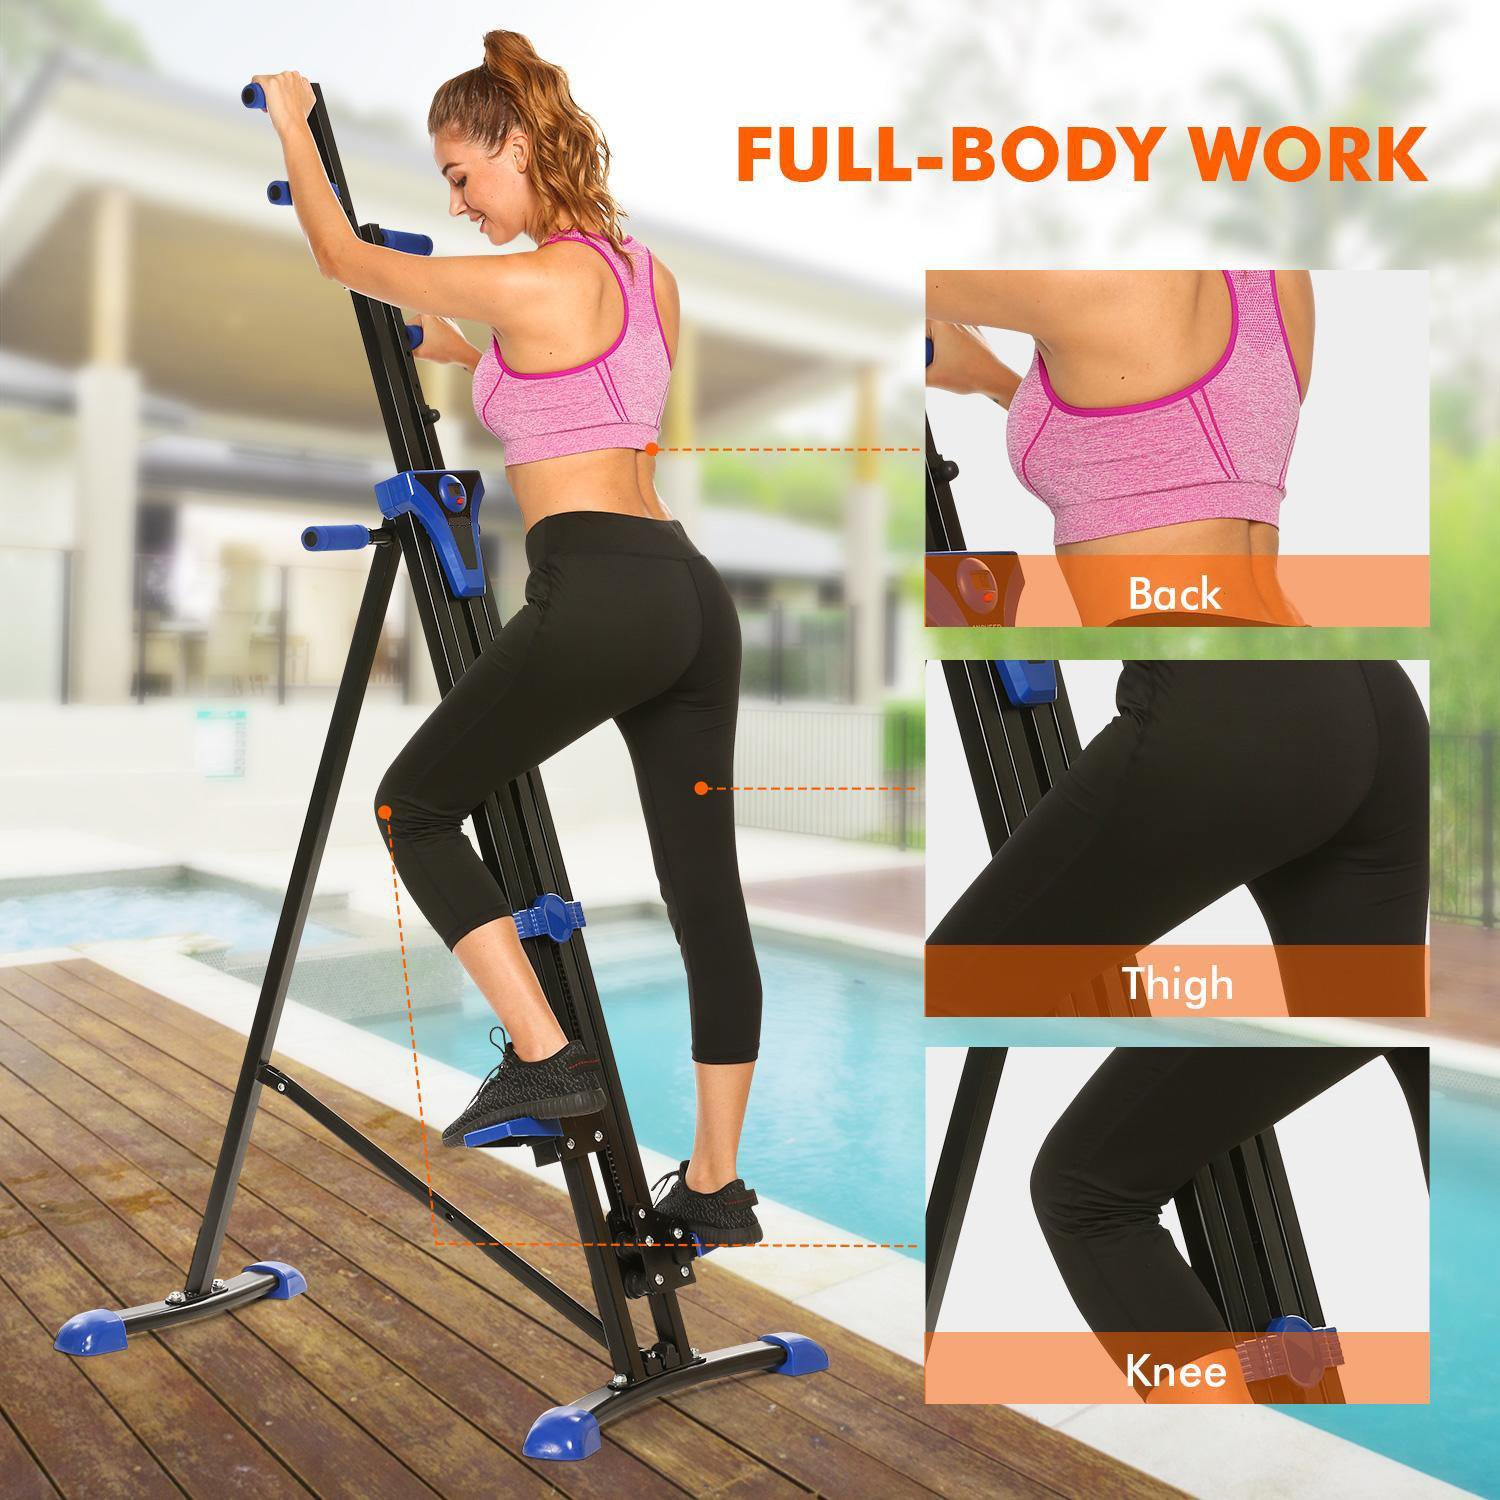 Vertical Mountain Climber Exercise Machine, 2 In 1 Foldable Vertical Stair Step Climber Stepper Exercise Fitness Climbing Machine by Evokem (Image #5)